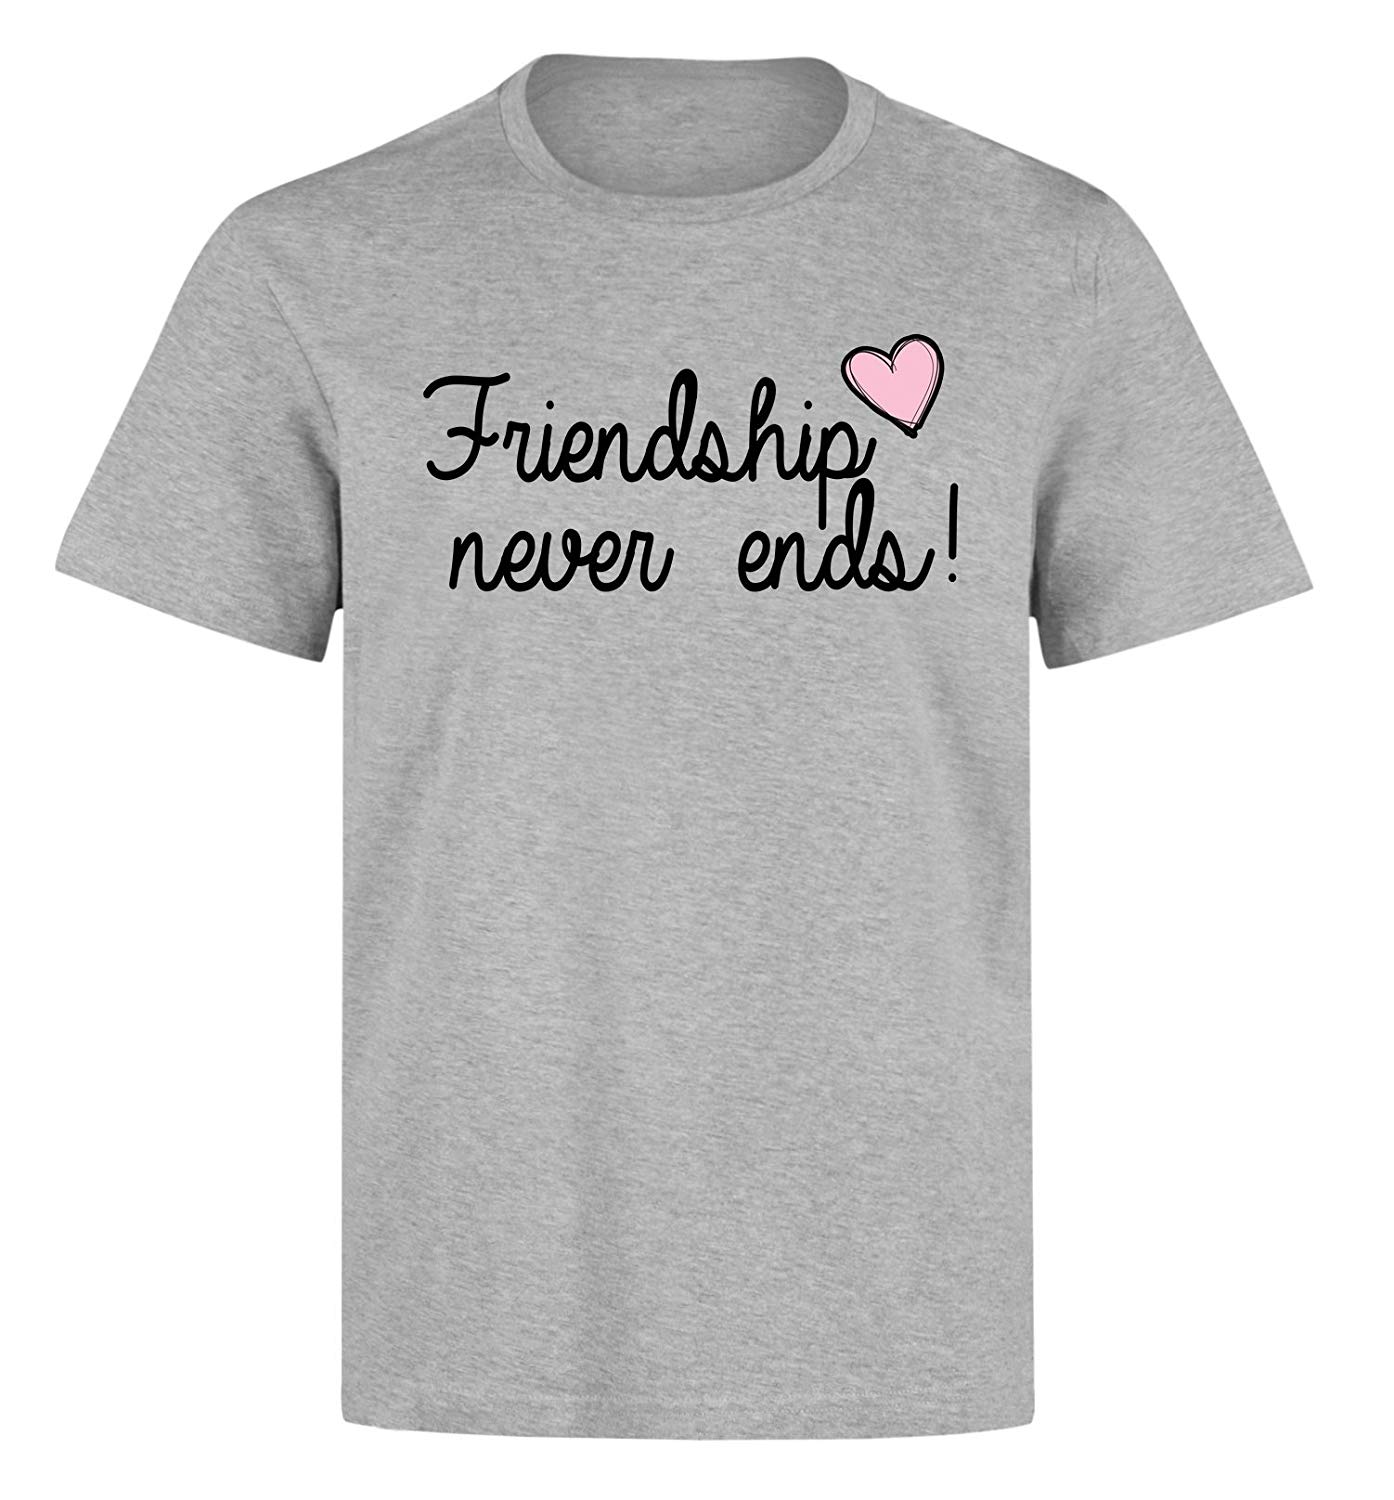 Friendship never ends pink heart Tshirt